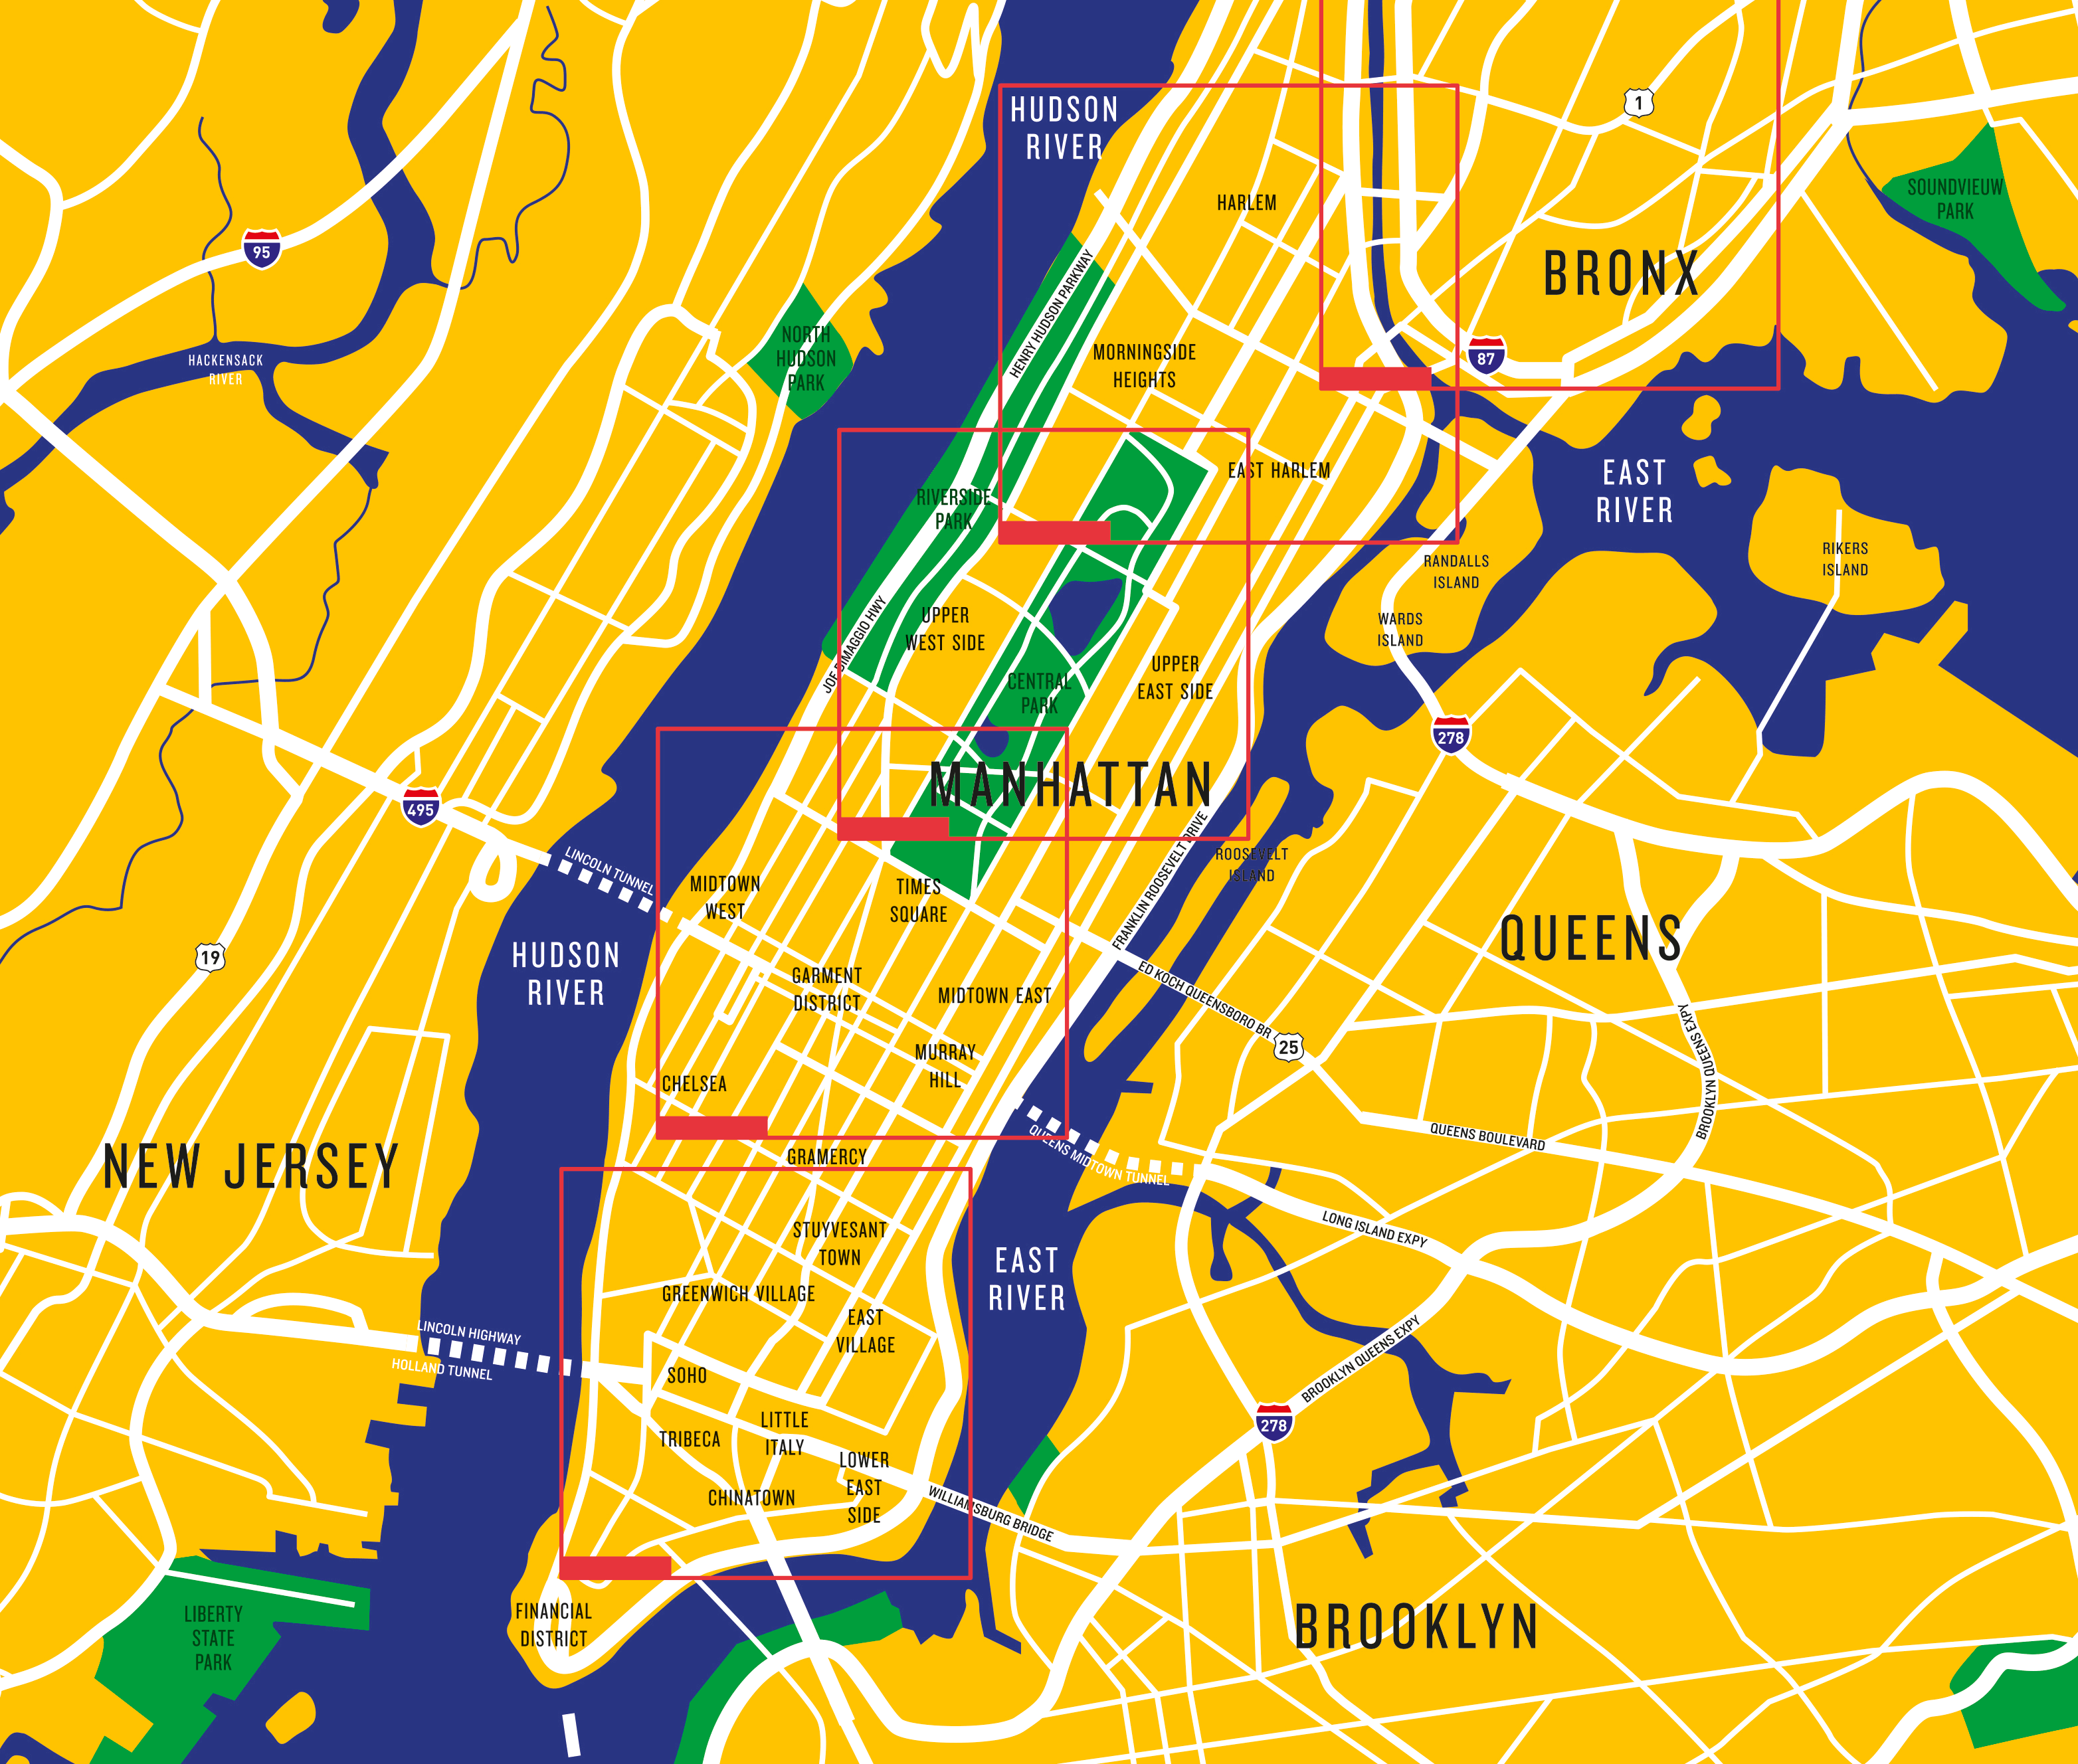 Map of different areas in NY